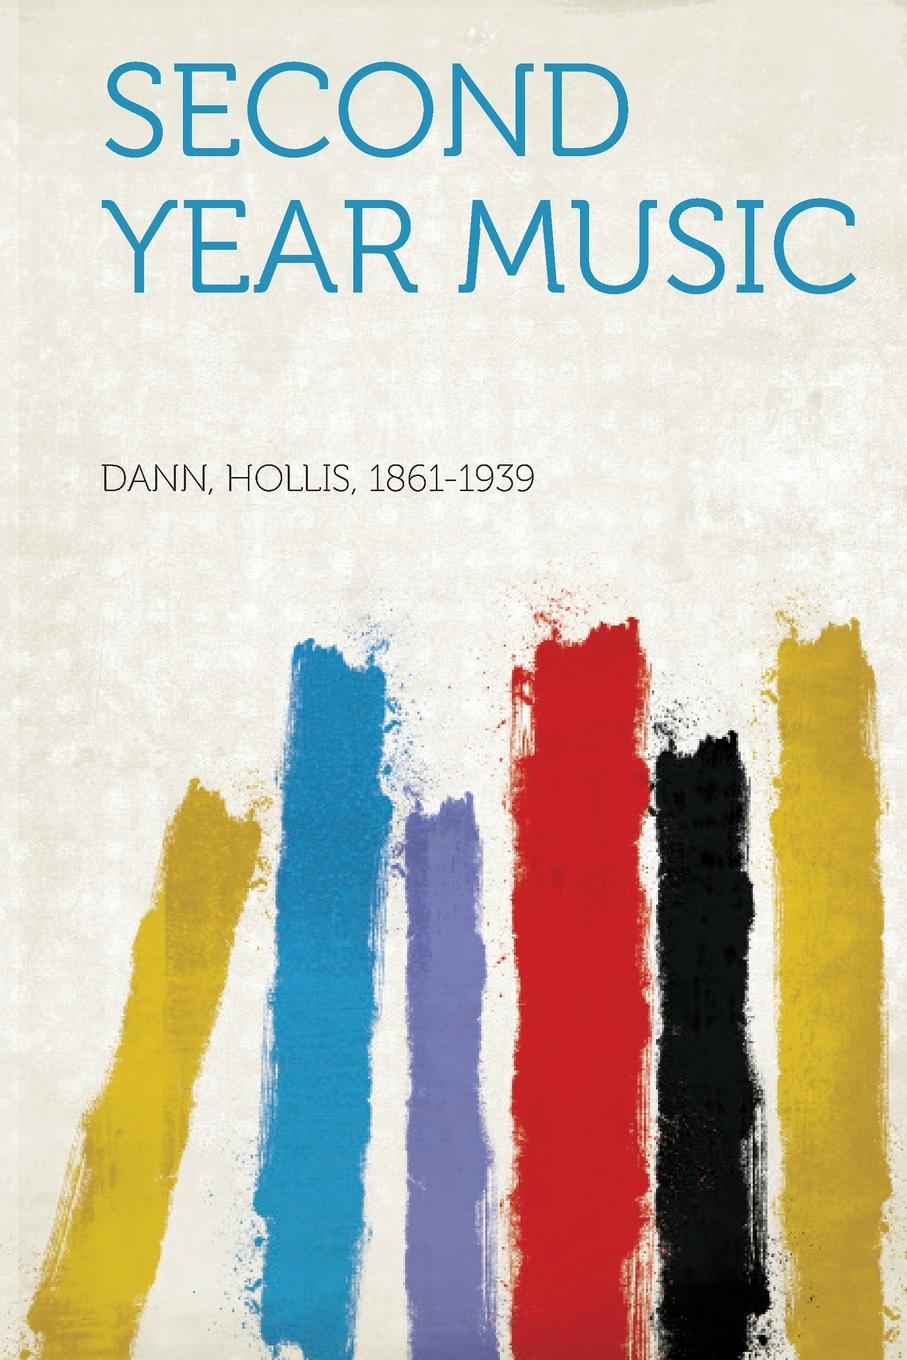 Фото - Dann Hollis 1861-1939 Second Year Music dann hollis 1861 1939 second year music